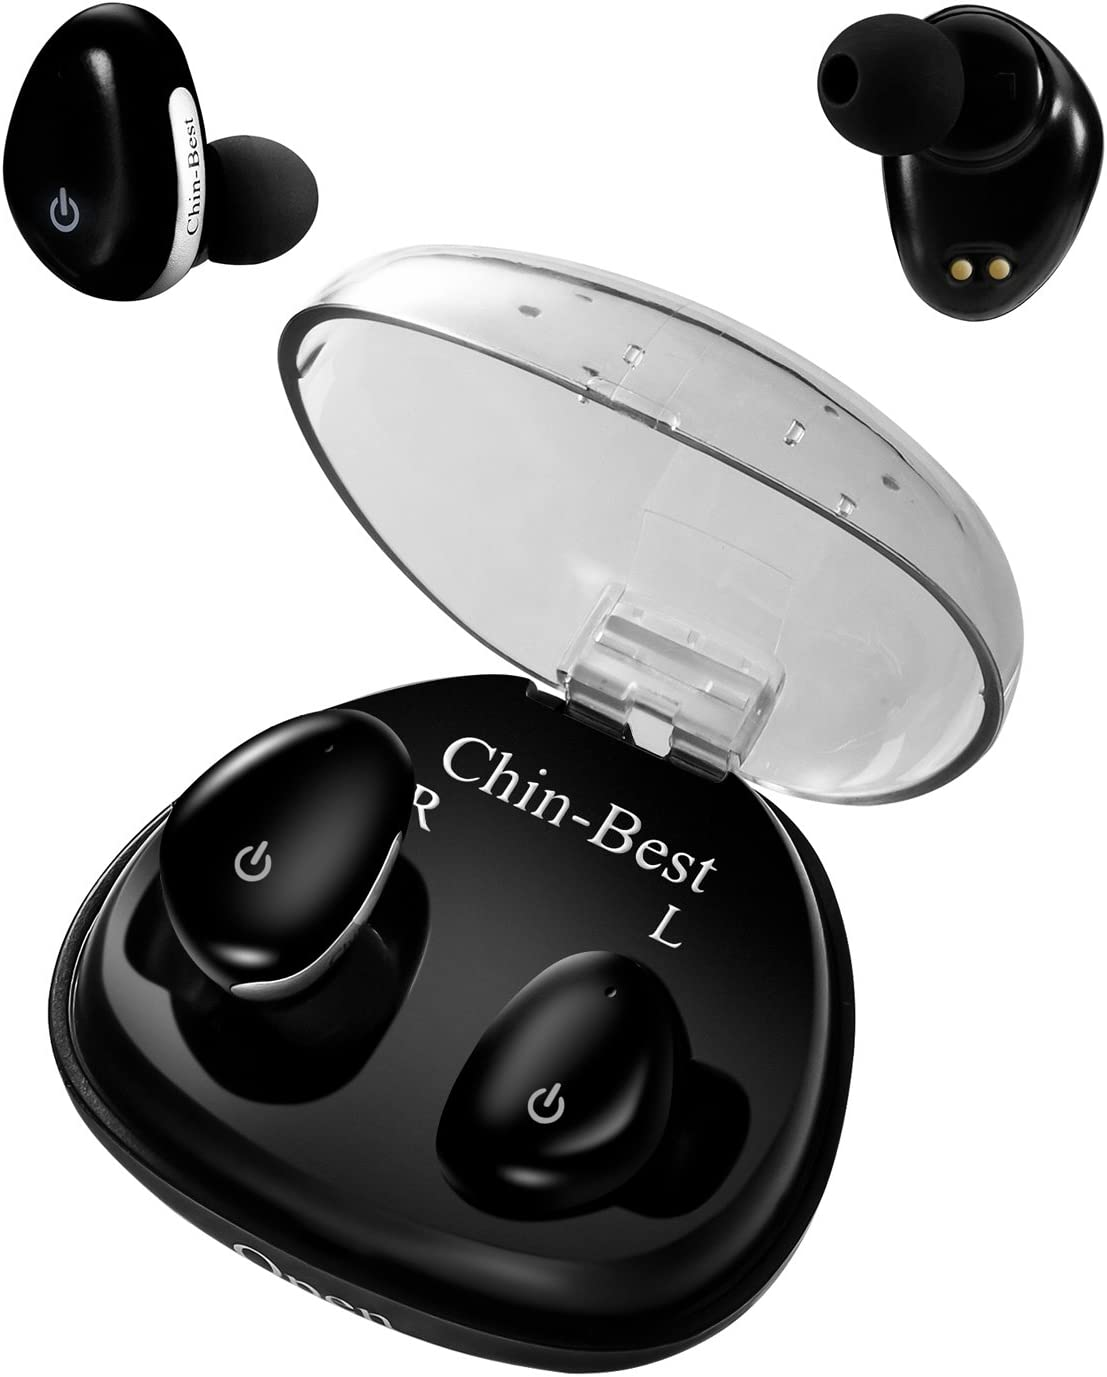 Amazon Com Wireless Headphones Chin Best Touch Control True Wireless Earbuds With Charging Box Sweatproof Wireless Earphones For Iphone Ipad Smartphones 3 Hours Working Time Black Upgraded Home Audio Theater